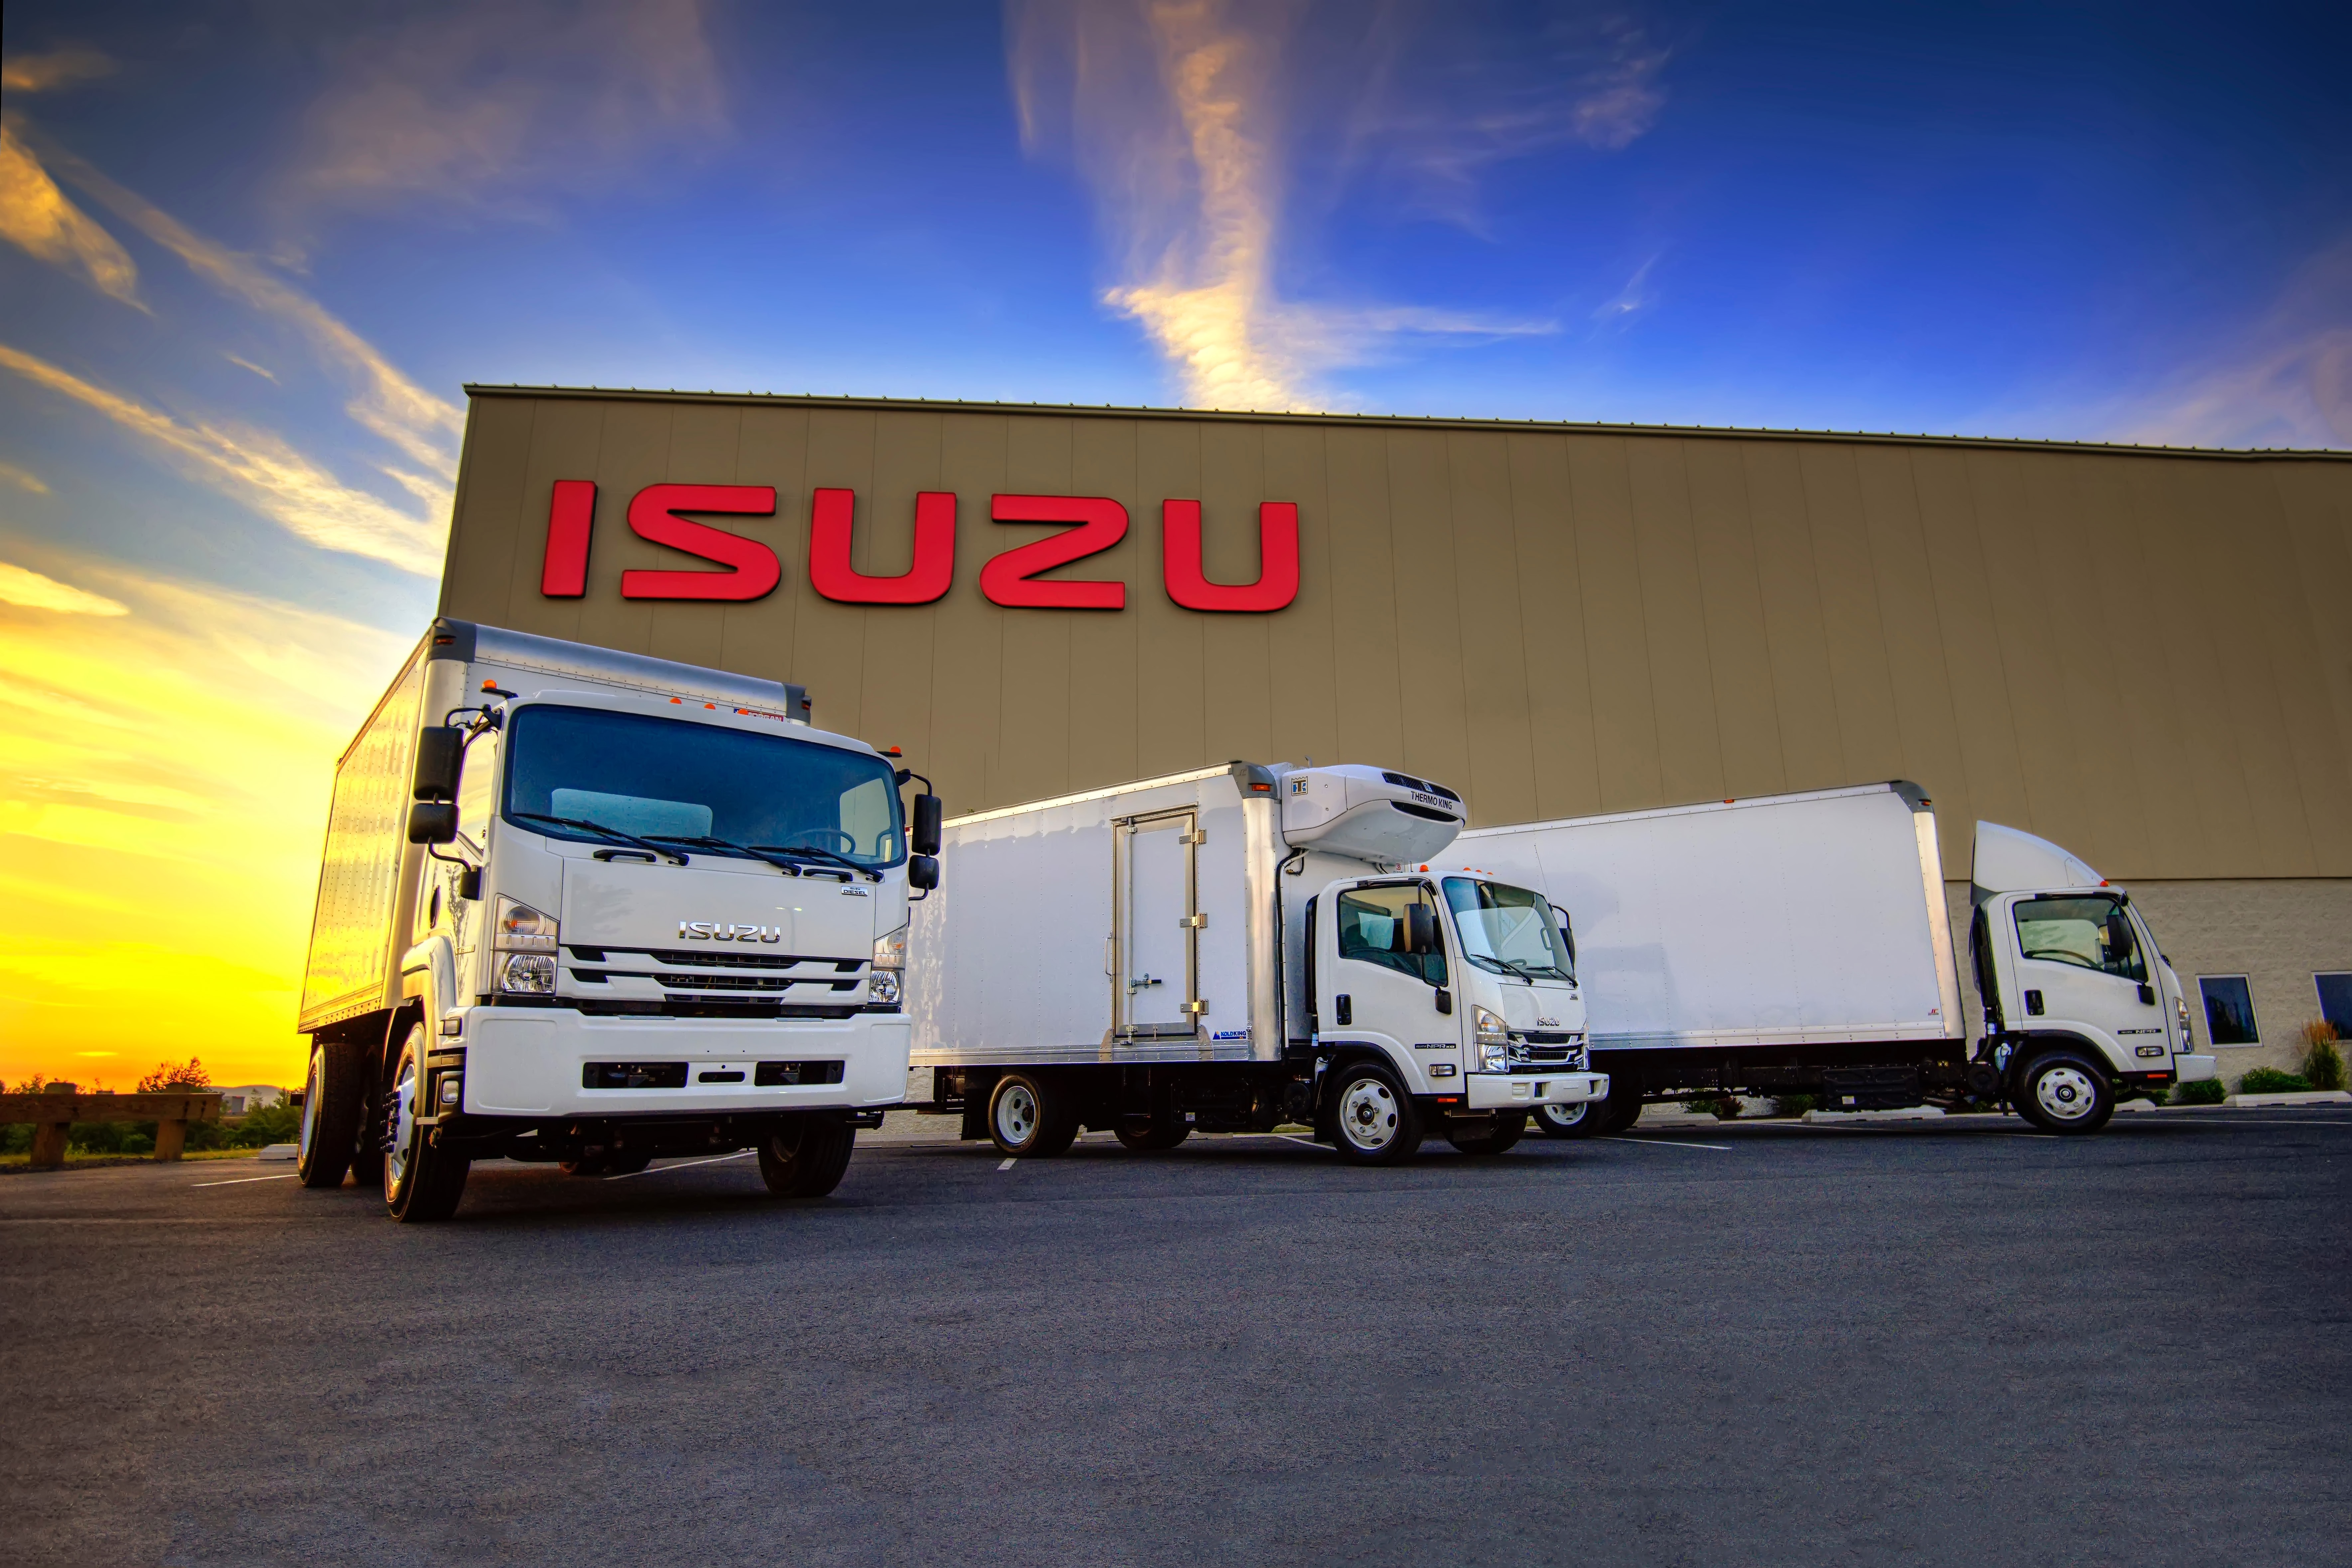 Isuzu Trucks in front of Isuzu